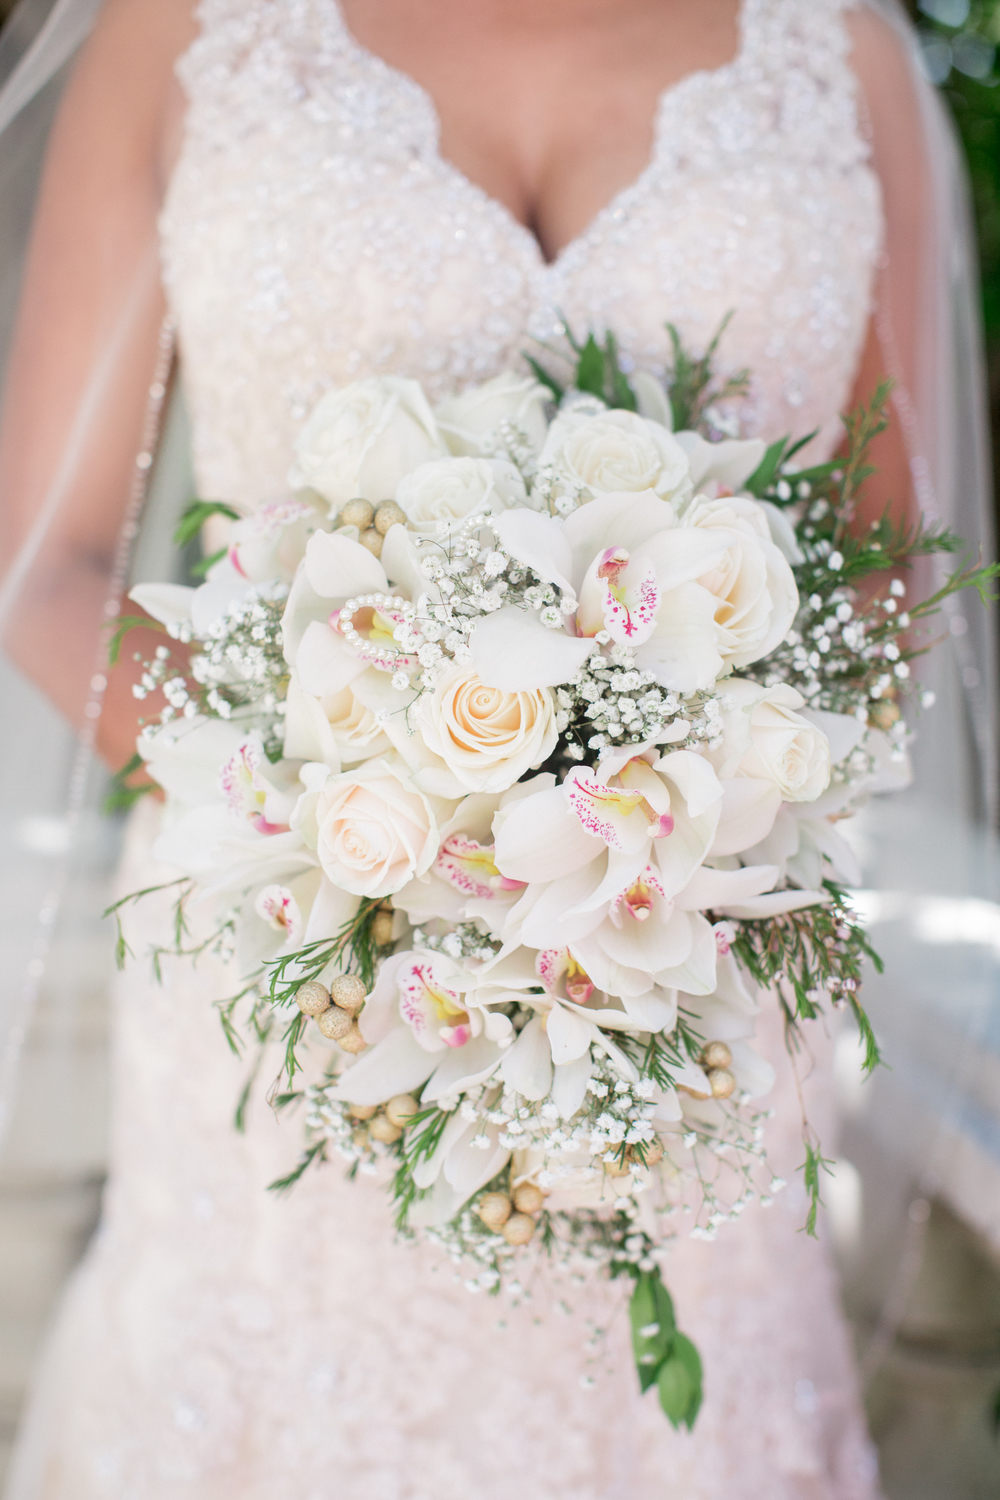 White bouquet and lace dress wedding photography inspiration